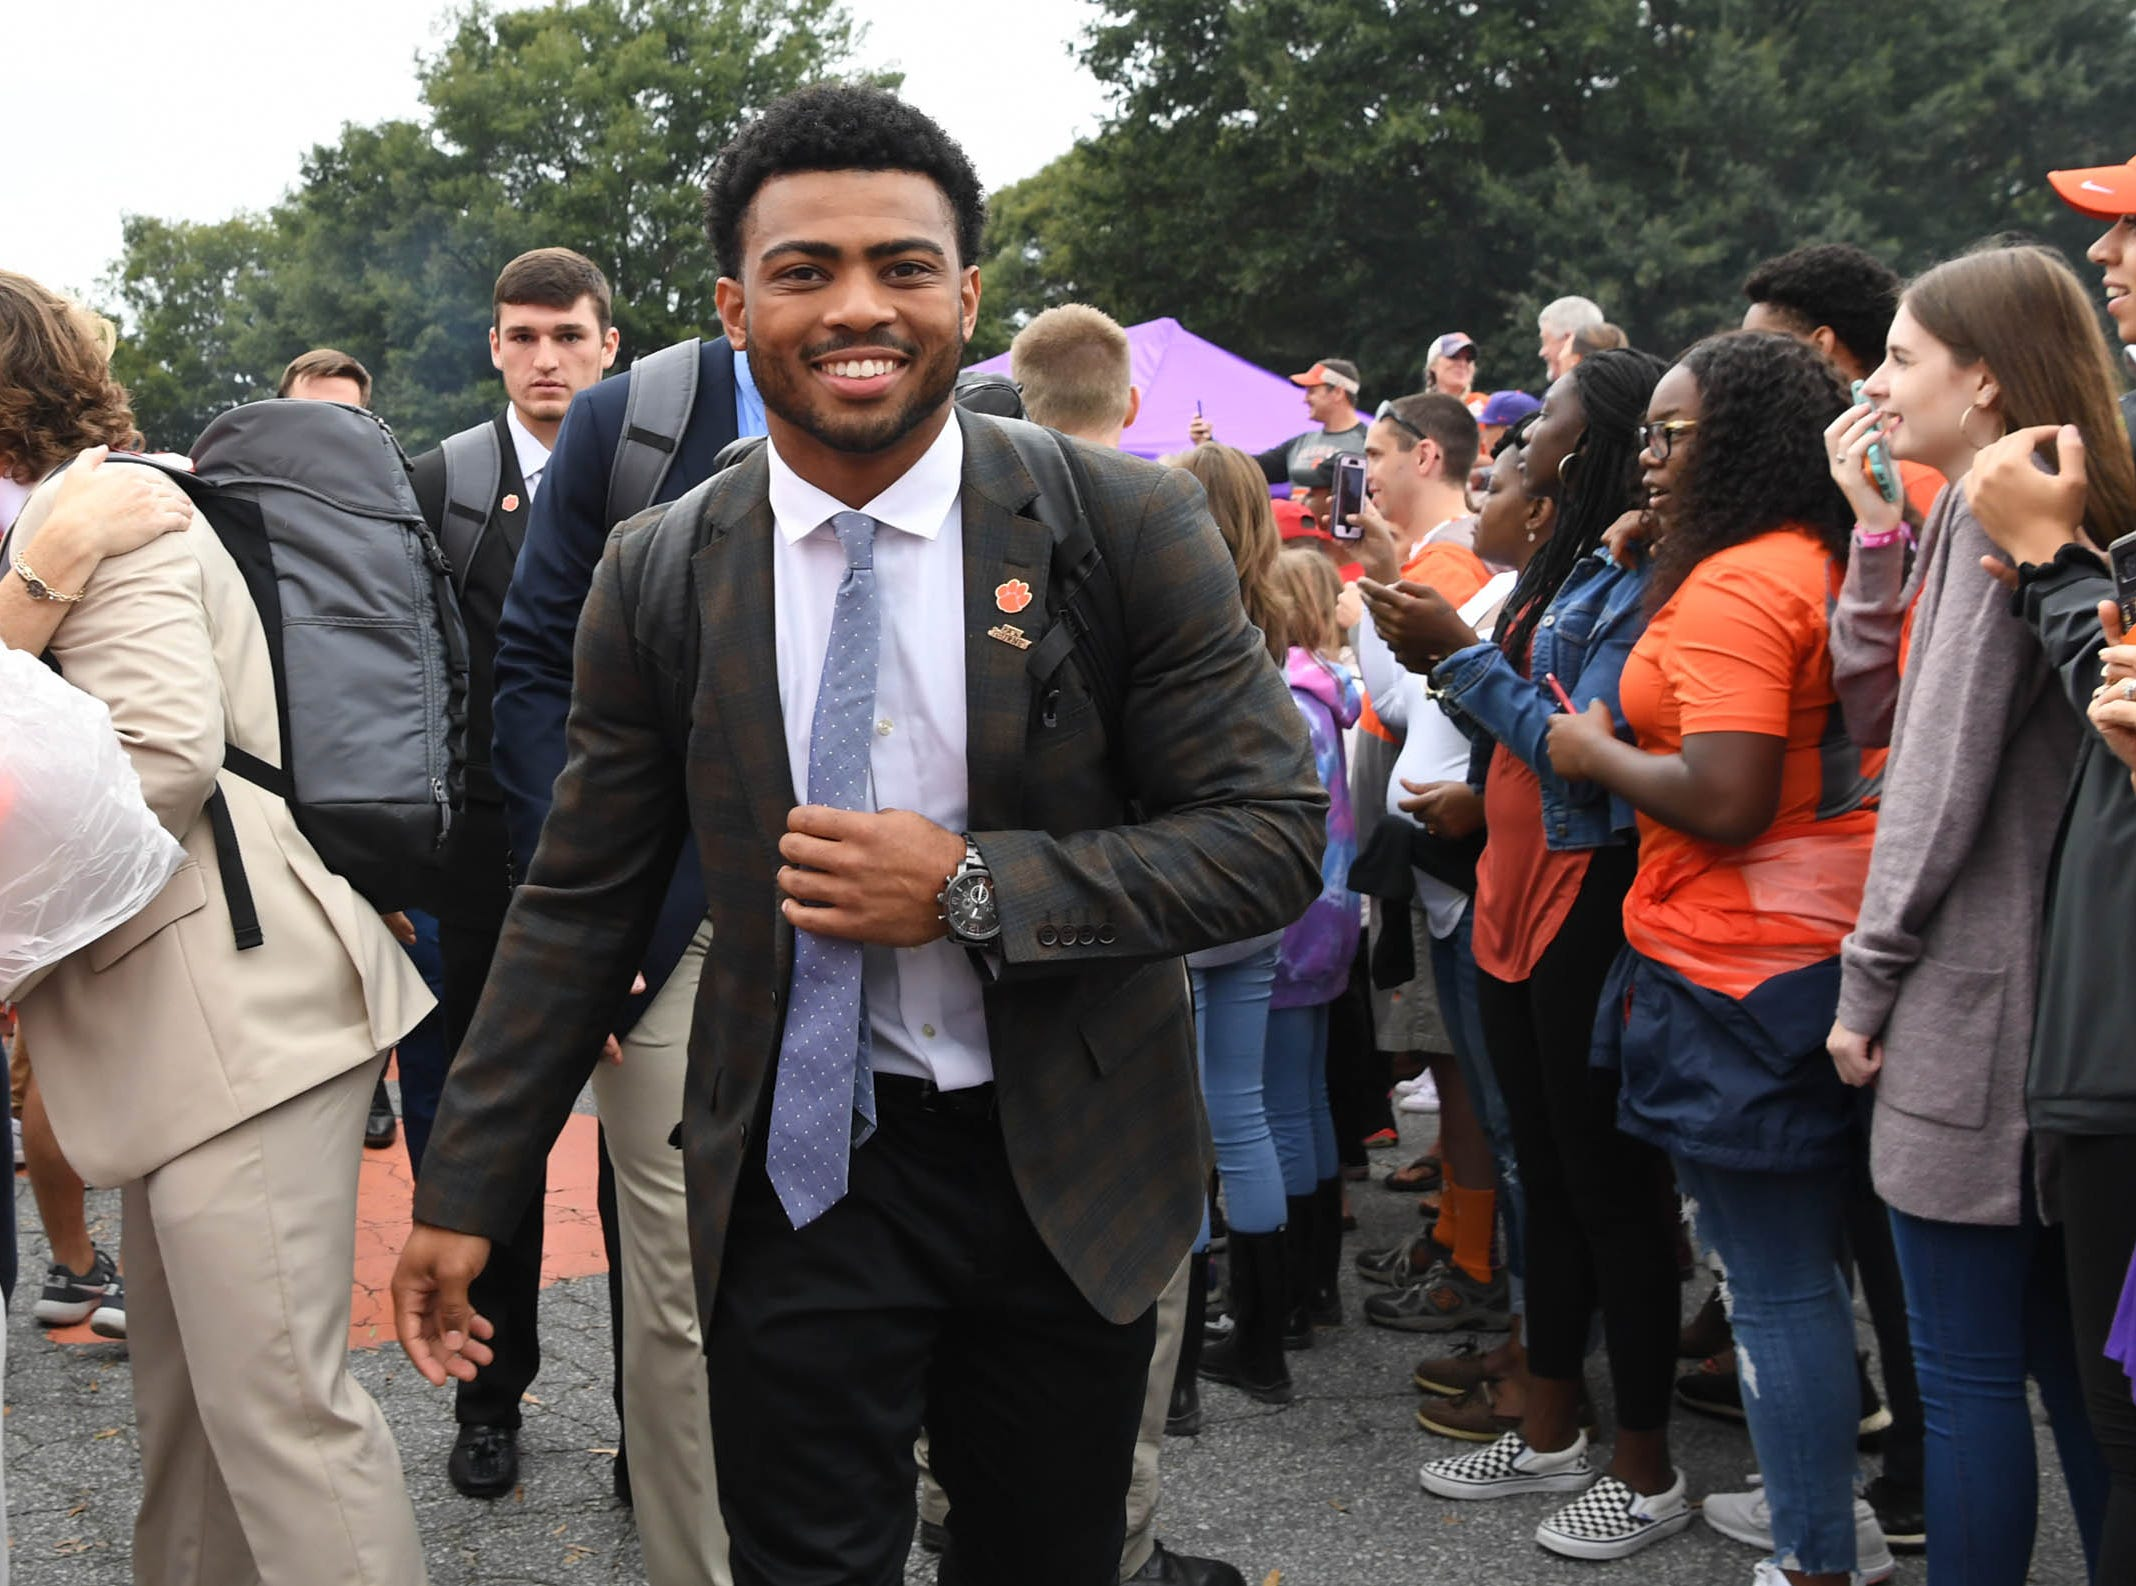 Clemson running back Darien Rencher (21) walks by fans during Tiger Walk before the game in Memorial Stadium on Saturday, October 20, 2018.